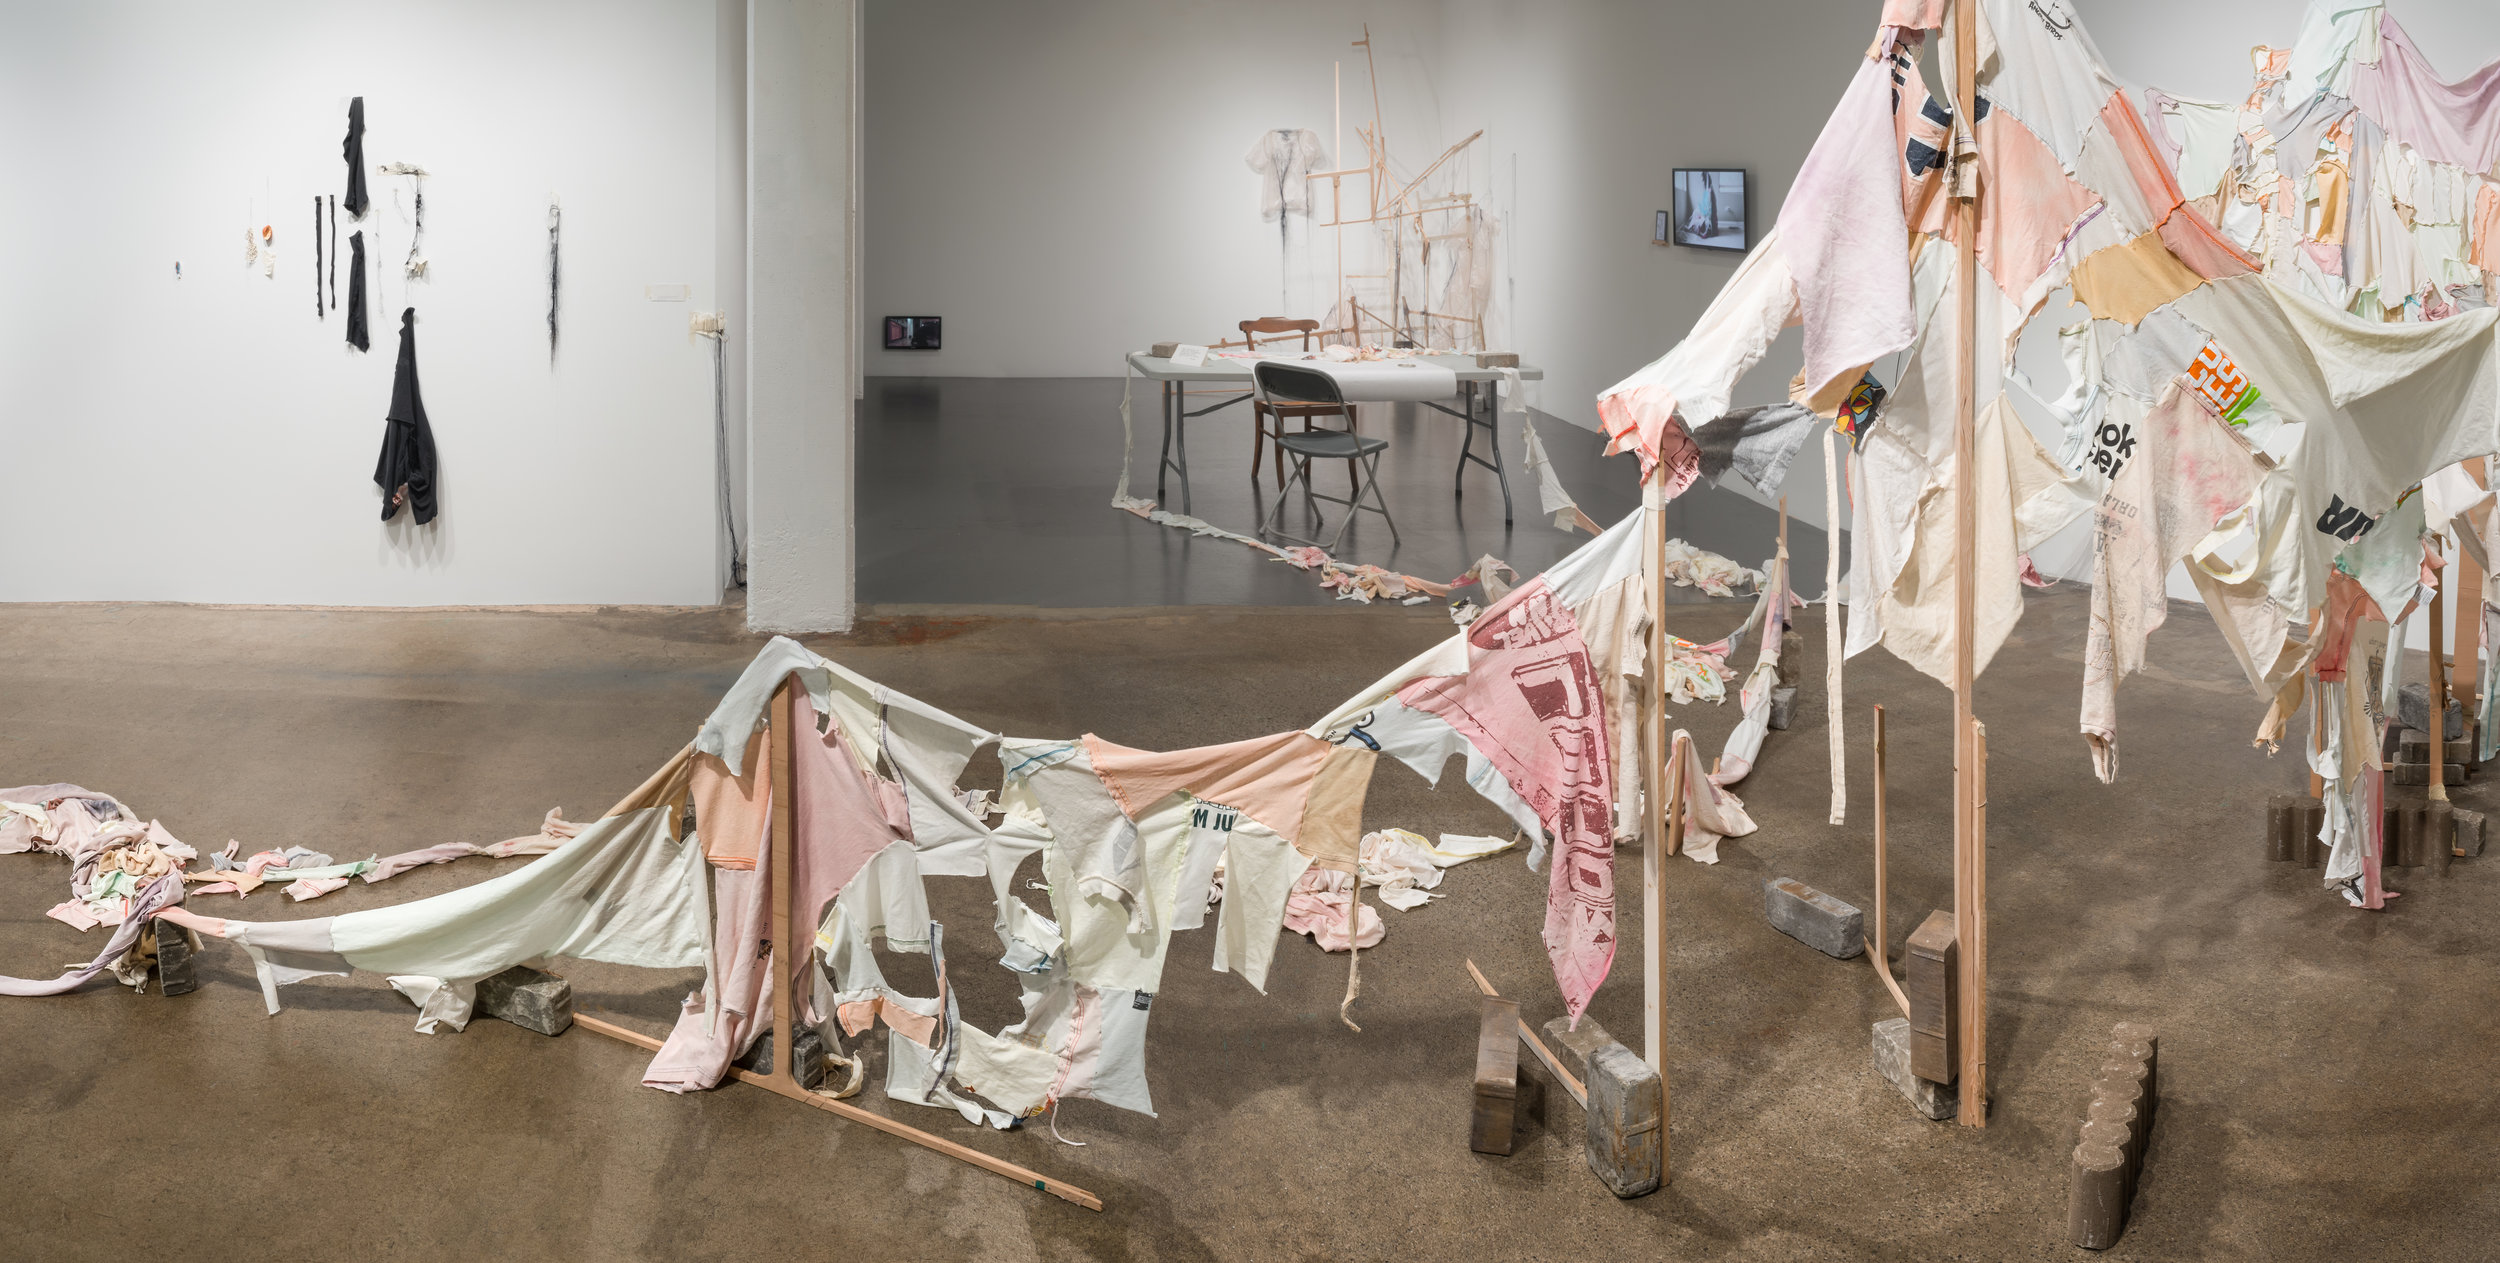 Installation view of the show (image by Joe Freeman)